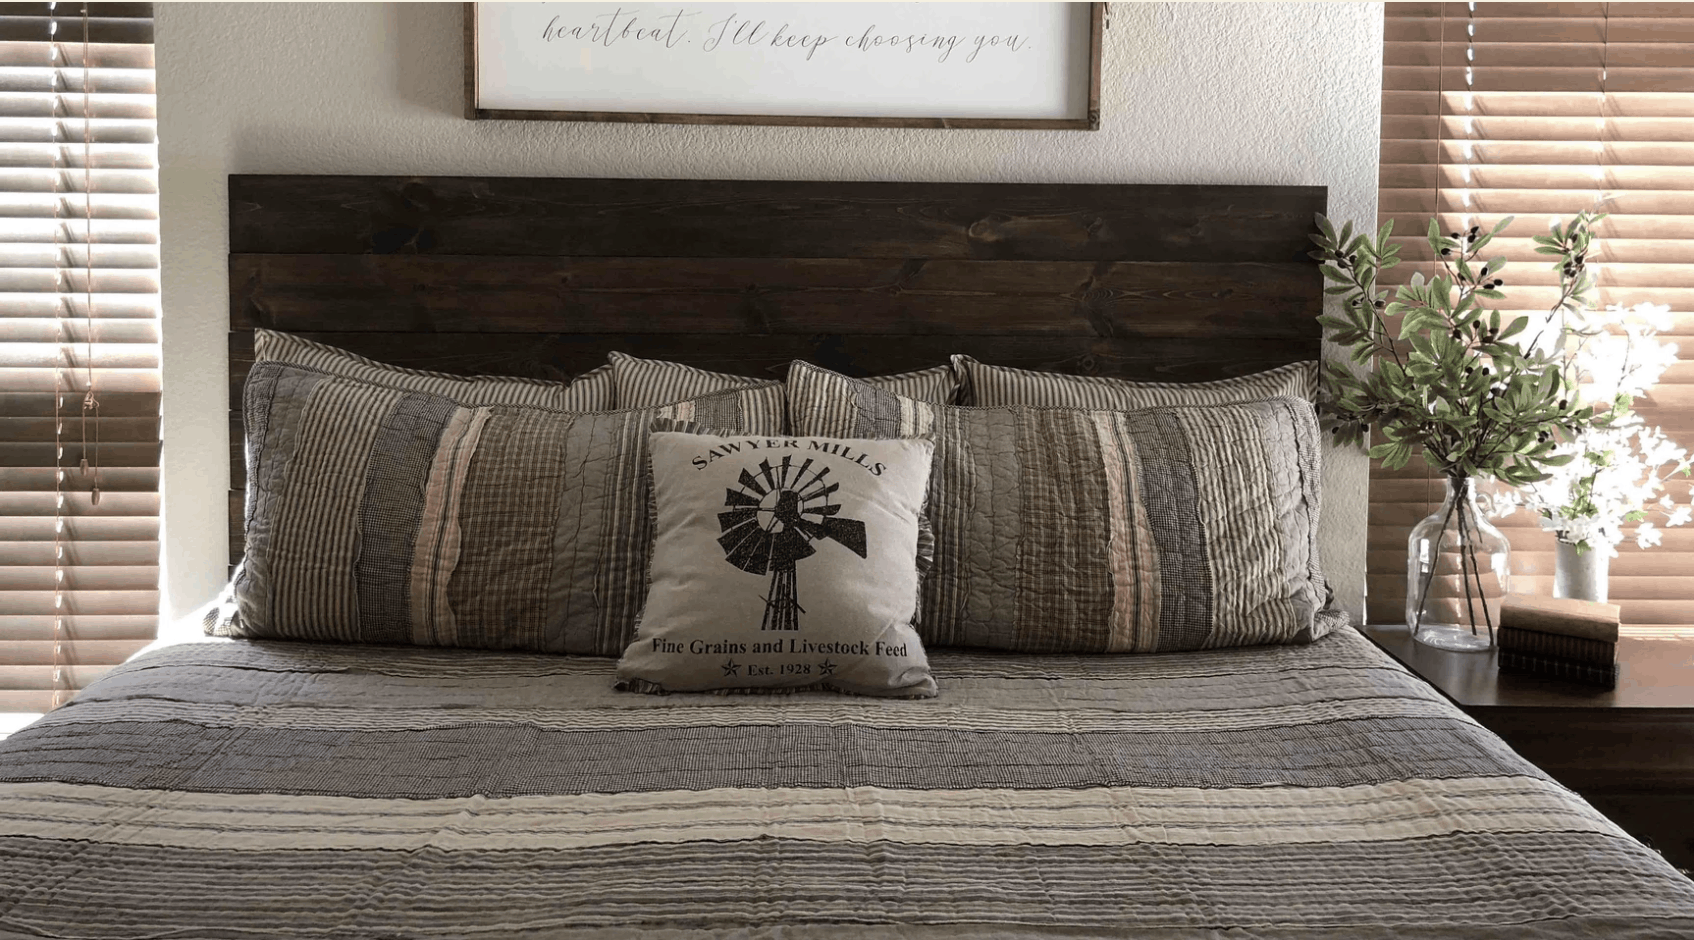 Simple diy rustic stained wood headboard